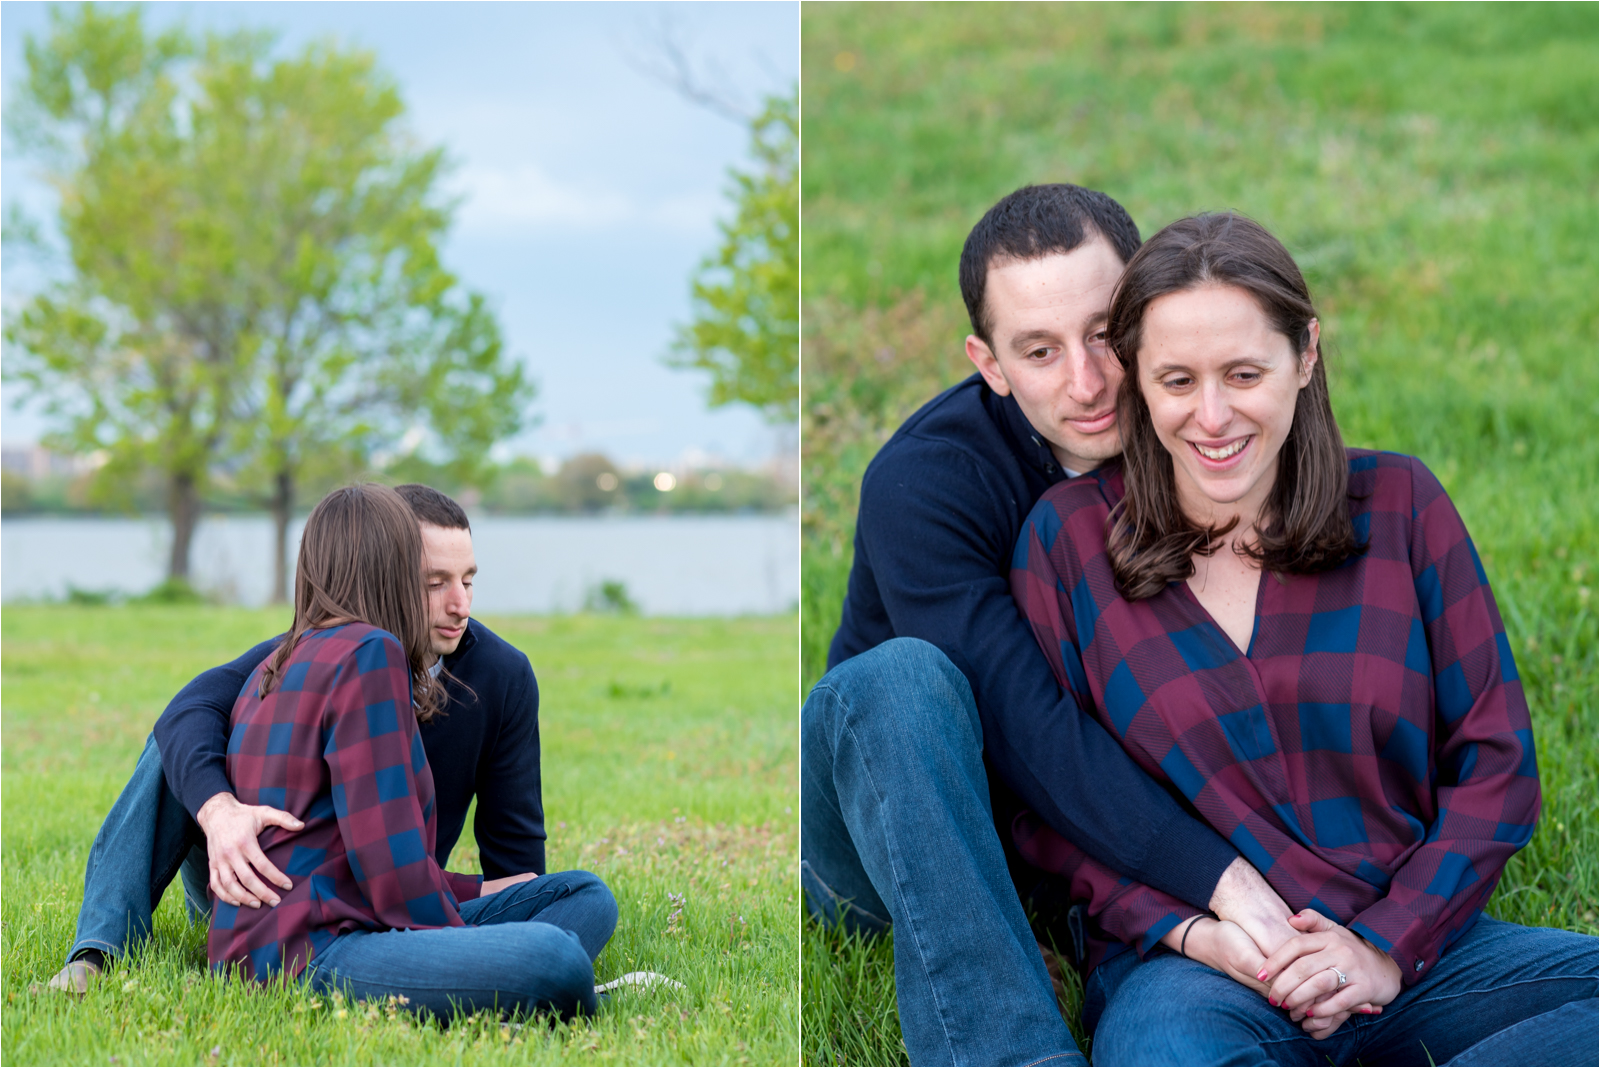 engagement-photography-session-focus-on-joy-photography-jessica-capozzola-gravelly-point-park-washington-dc-maroon-checkered-shirt-navy-sweater-husband-wife-fiance-engaged-couple